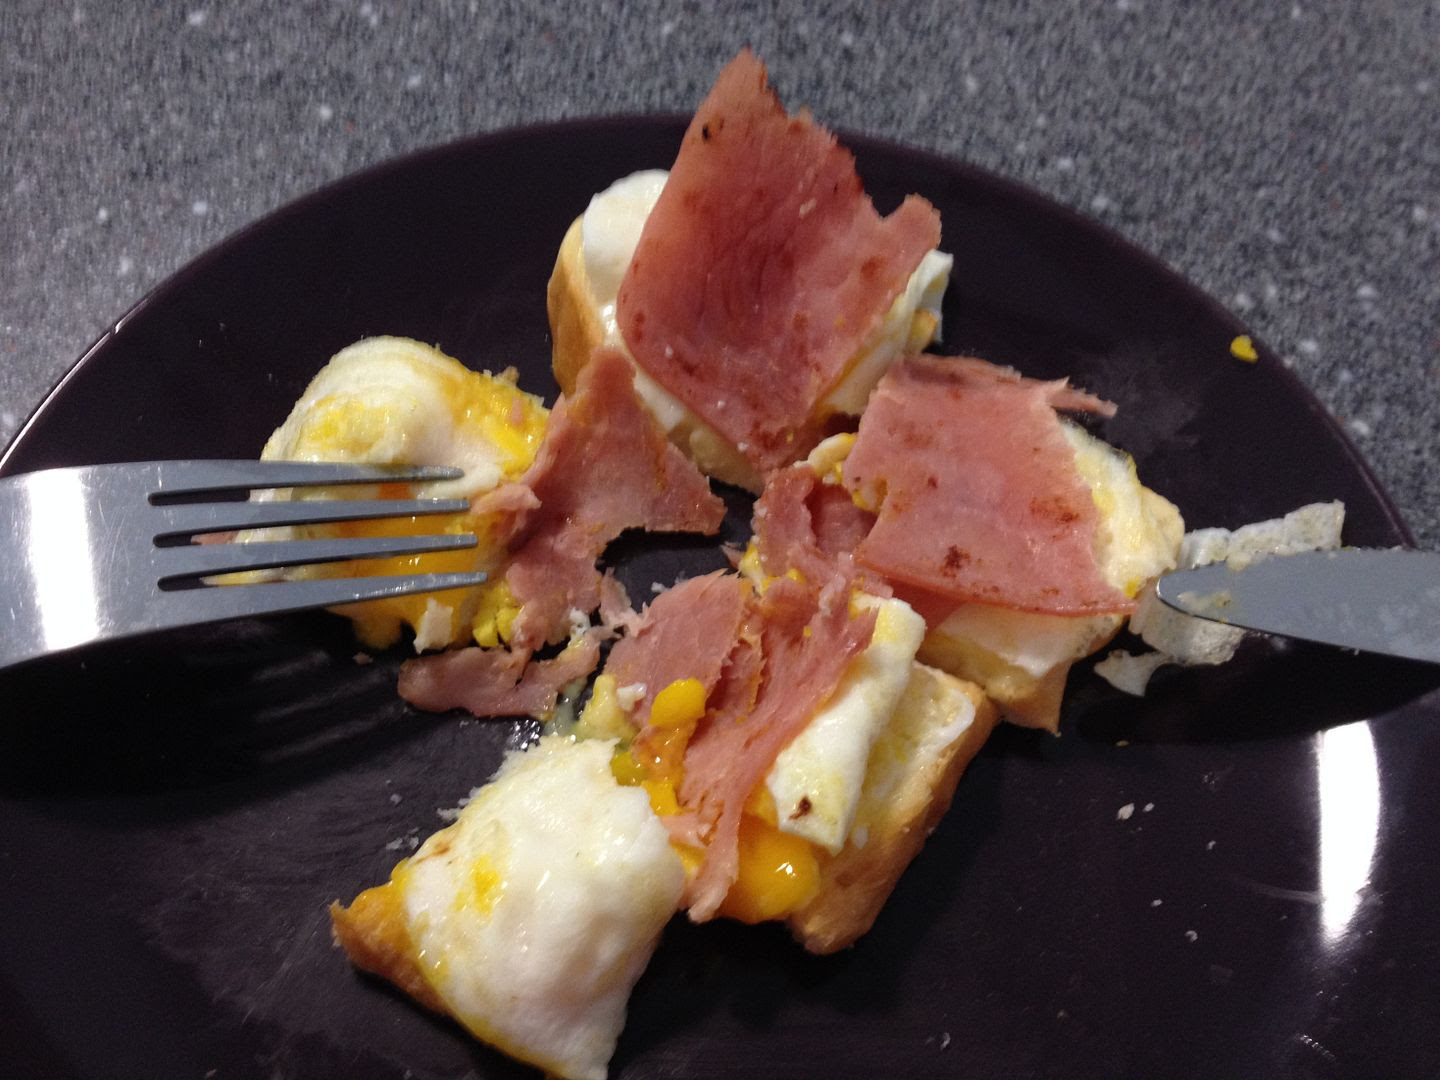 Peppered Ham with Eggs, Cheese, and Toast photo 2014-04-02102701_zpsba1ca966.jpg